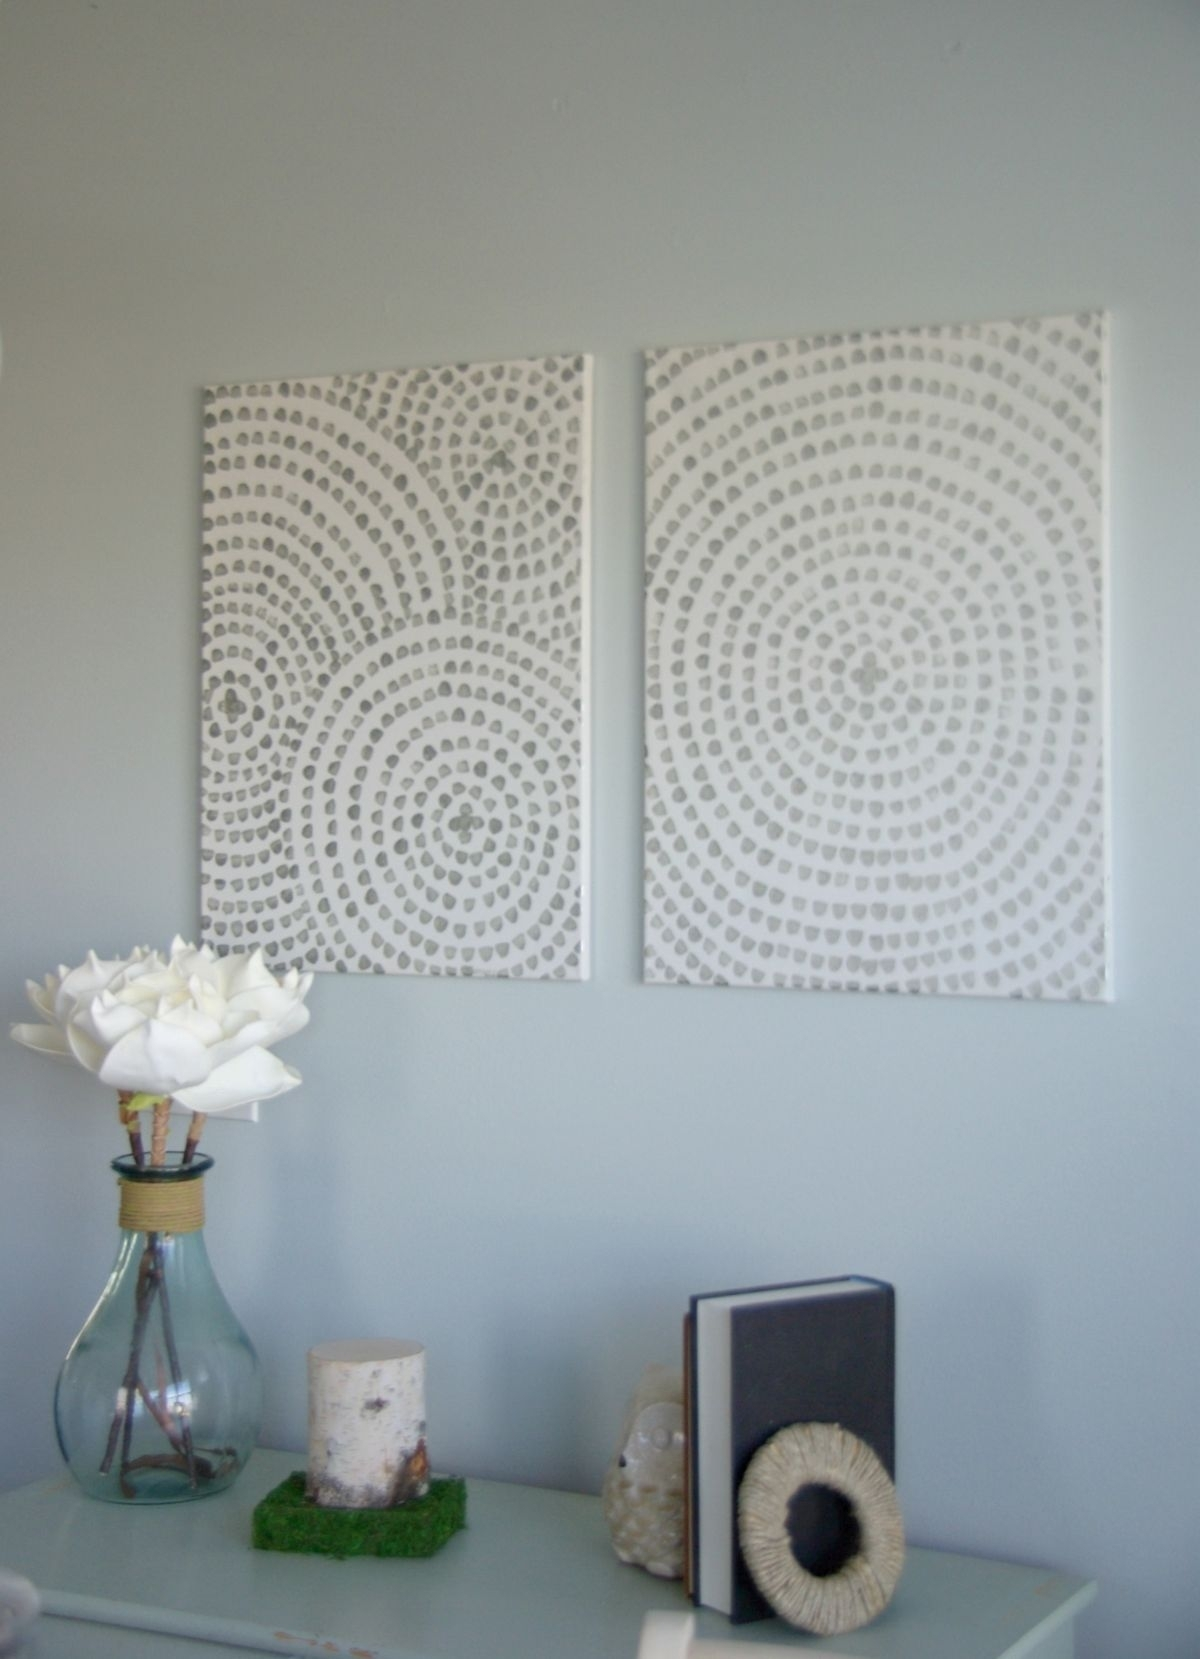 Diy Canvas Wall Art – A Low Cost Way To Add Art To Your Home | Diy With Regard To Latest Homemade Wall Art With Fabric (Gallery 14 of 15)